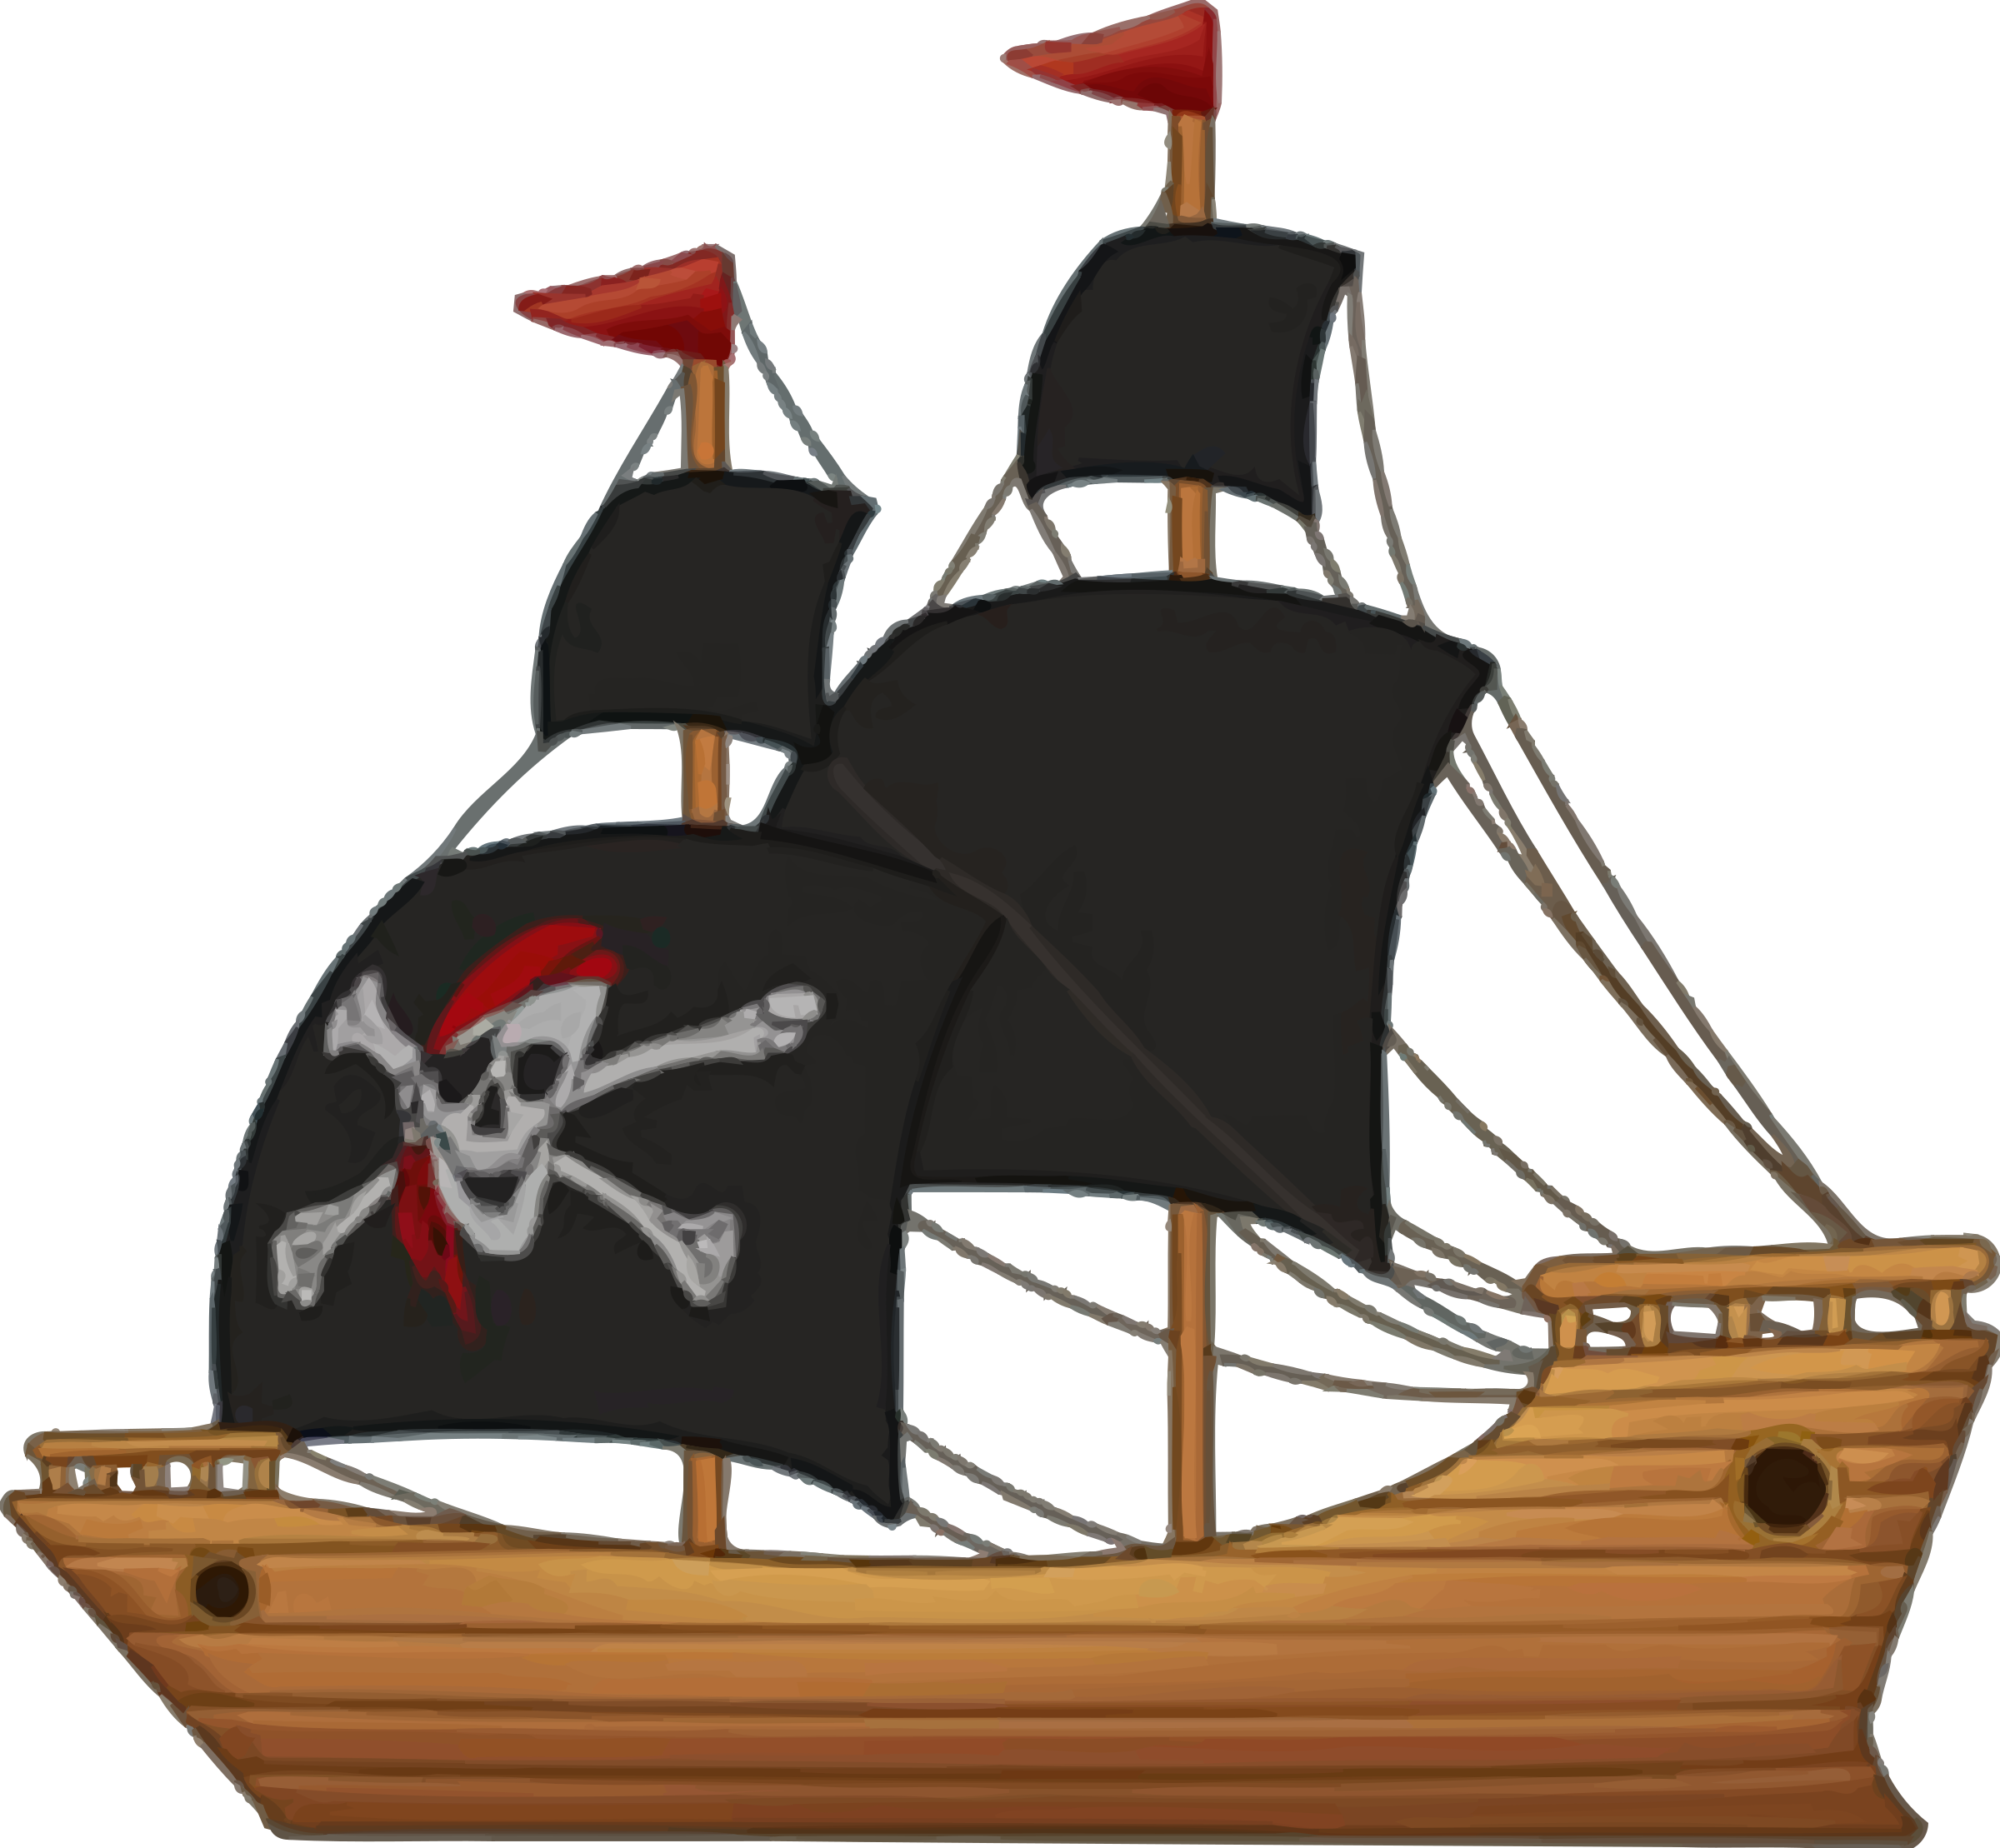 By firkin from an. Clipart anchor pirate ship